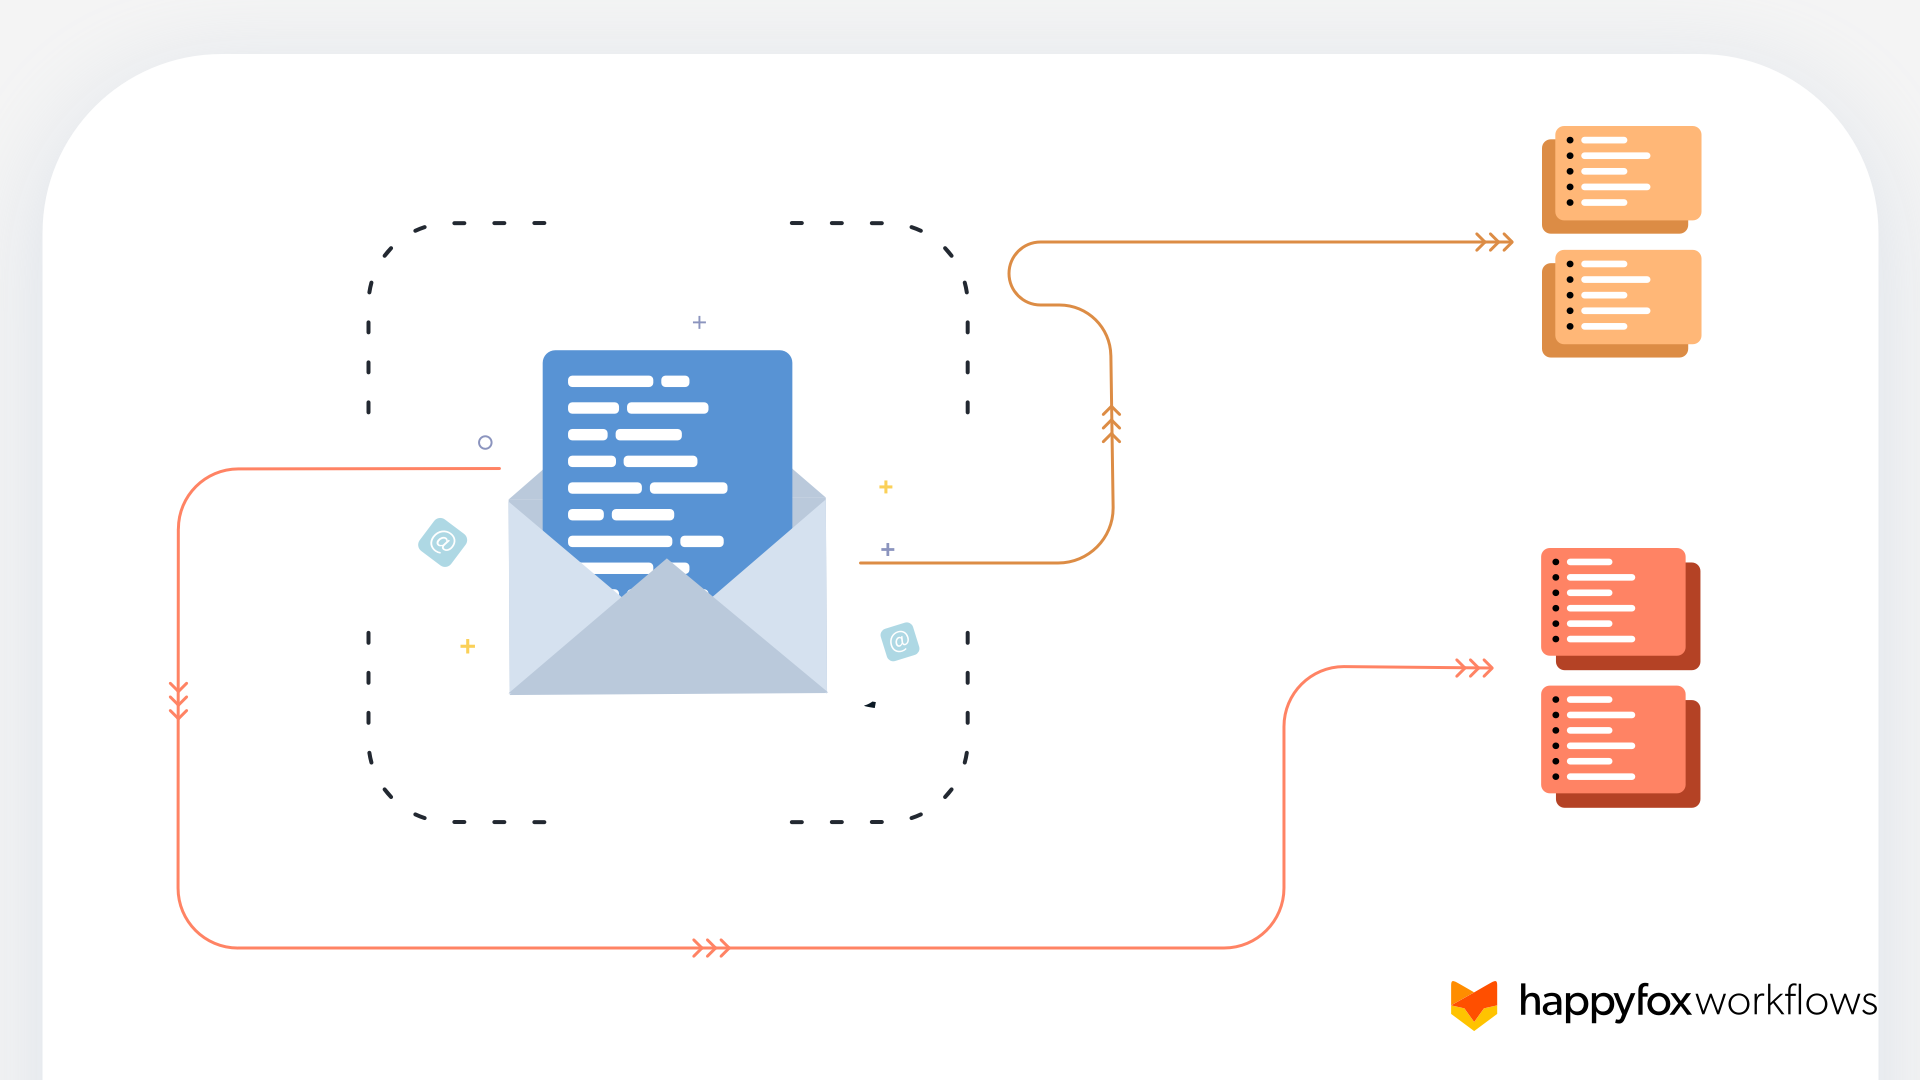 Workflow automation: Set ticket and contact fields from incoming emails